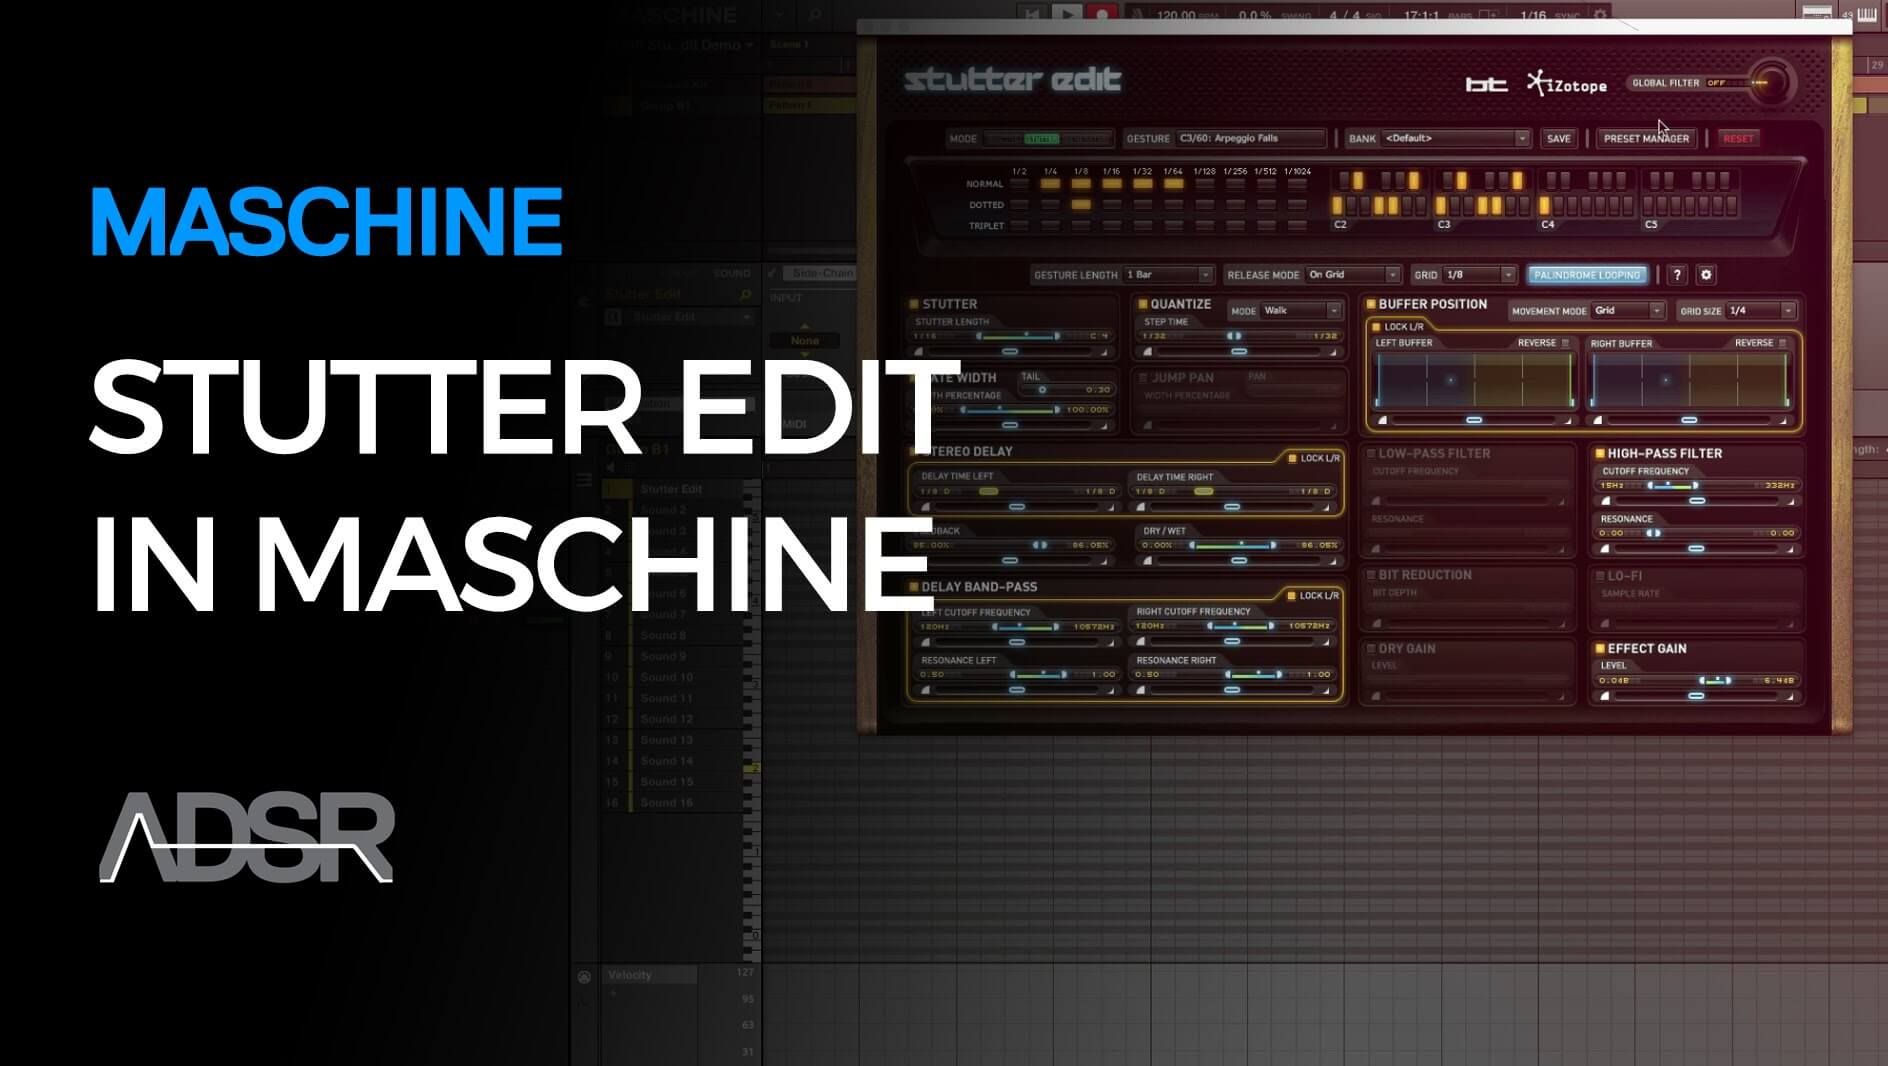 Izotope Stutter Edit in Maschine